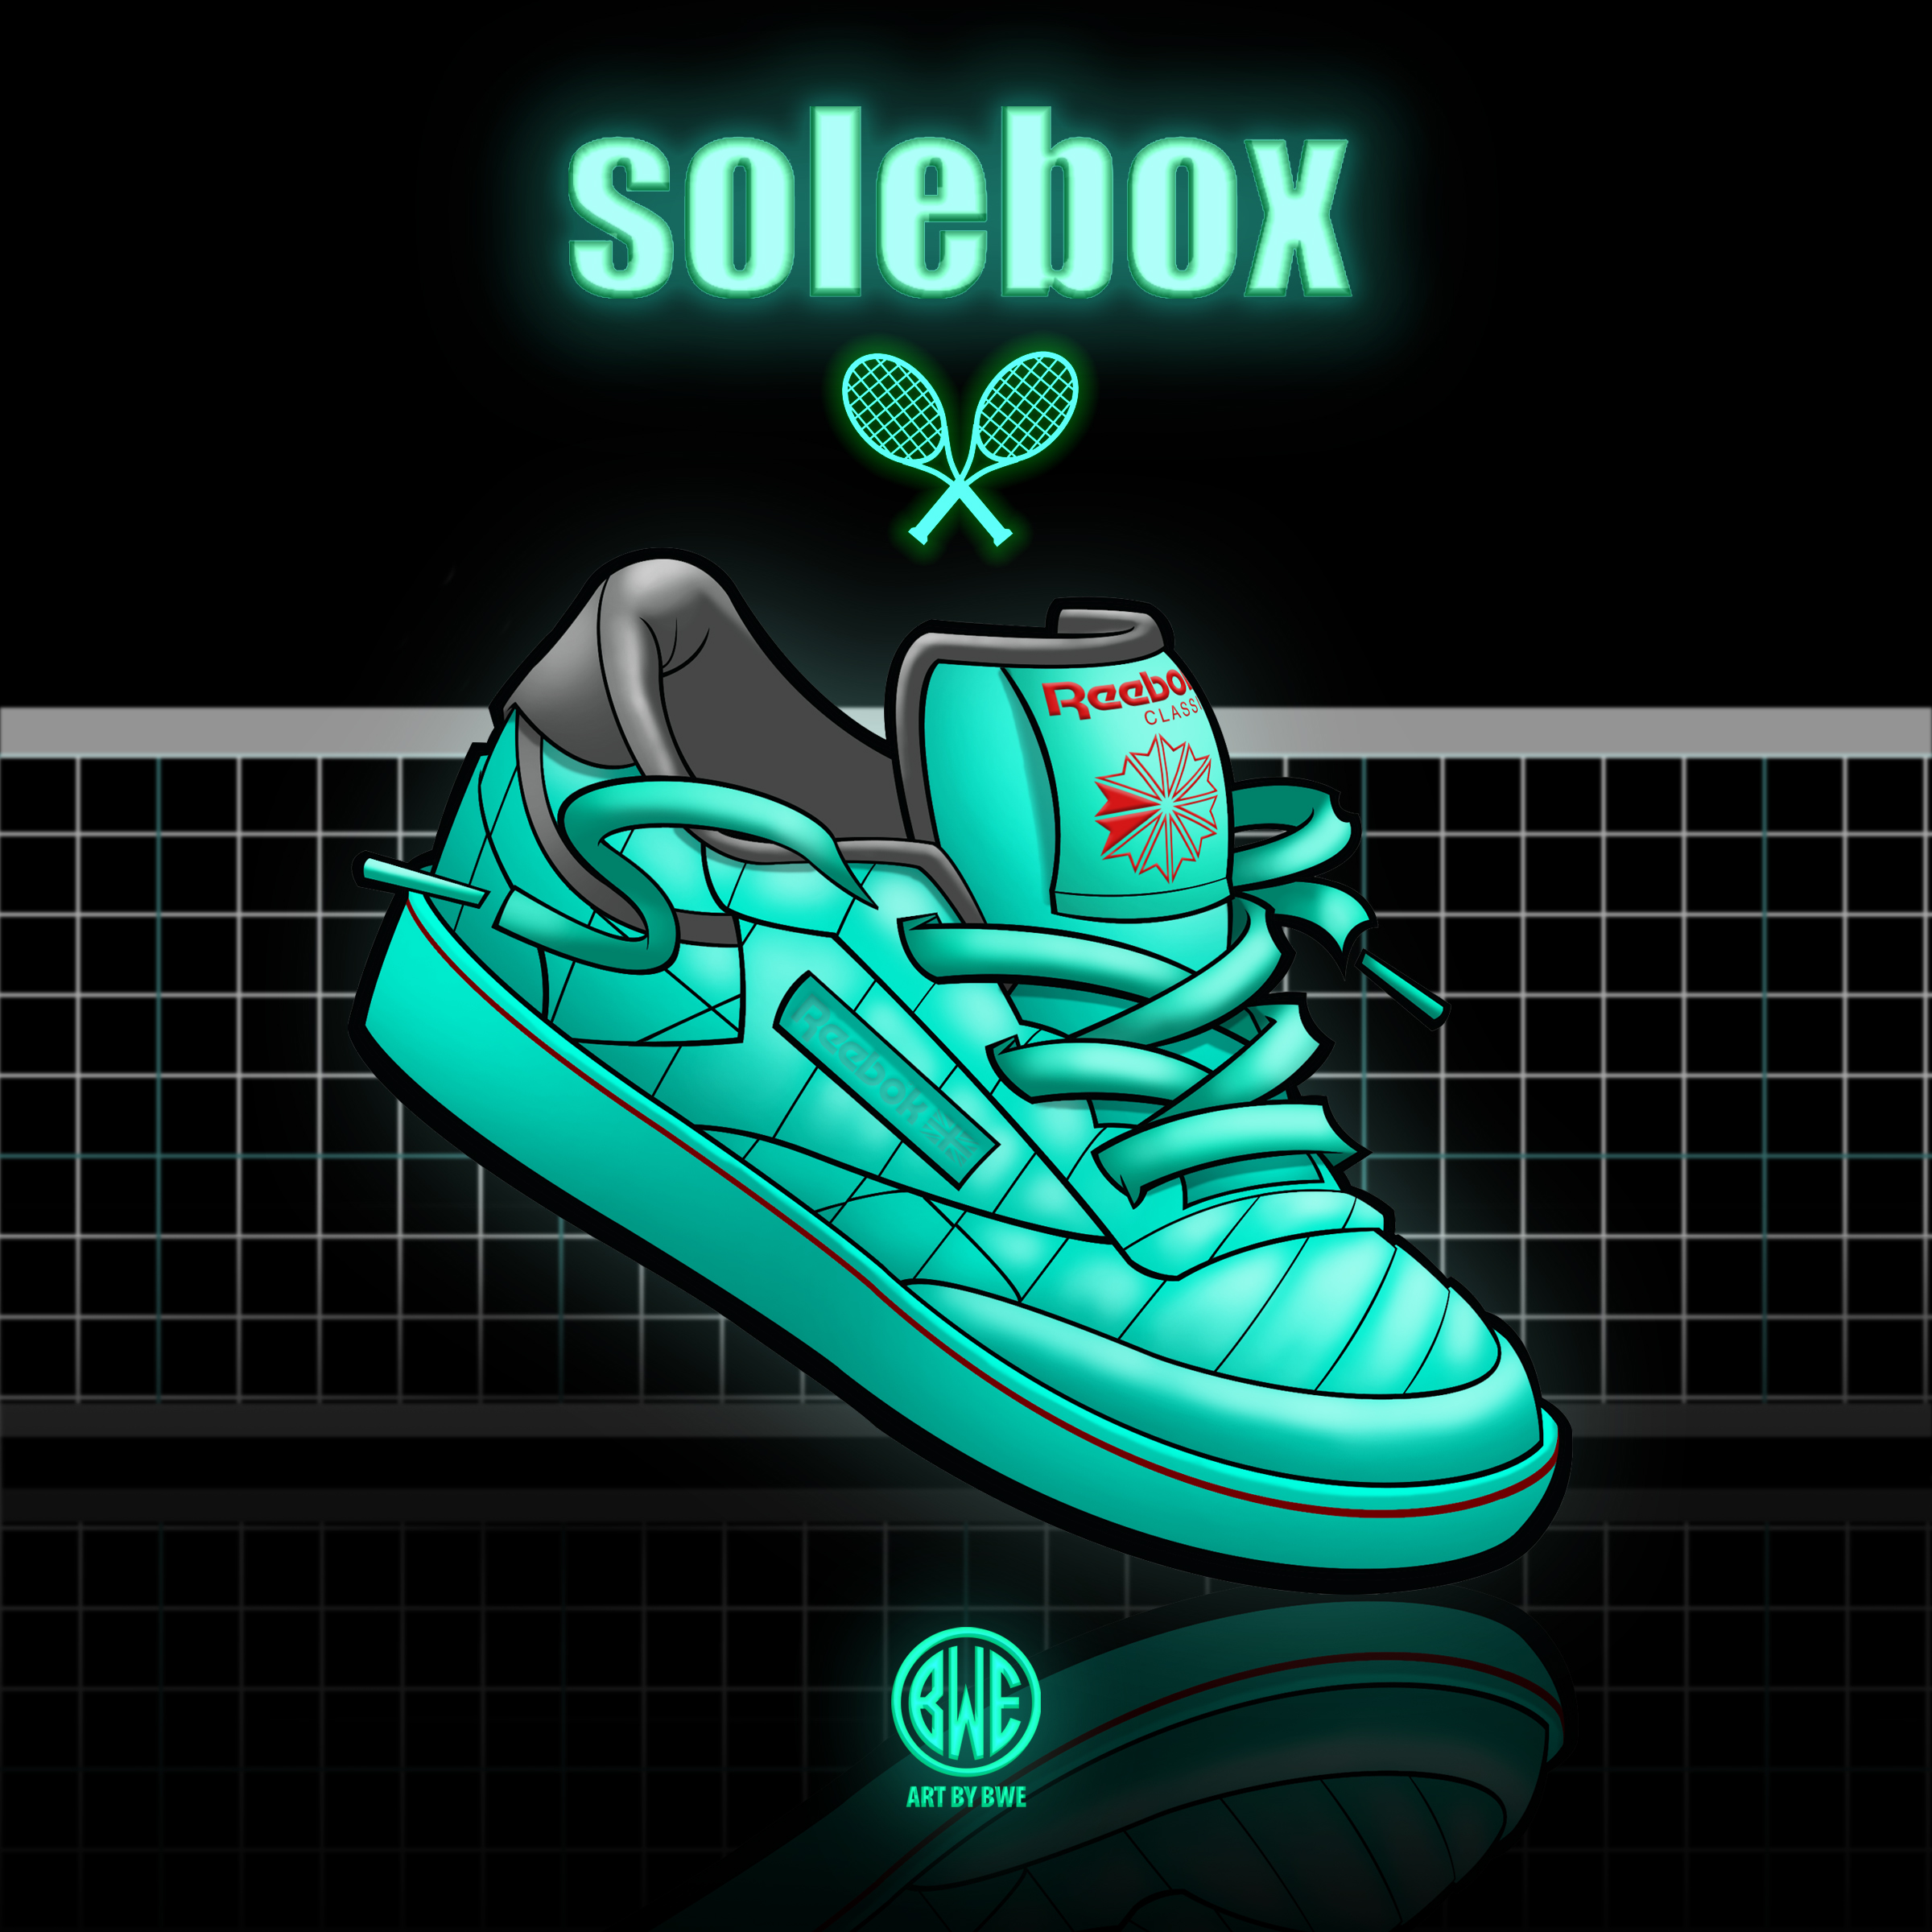 Solebox x Reebok Promo art